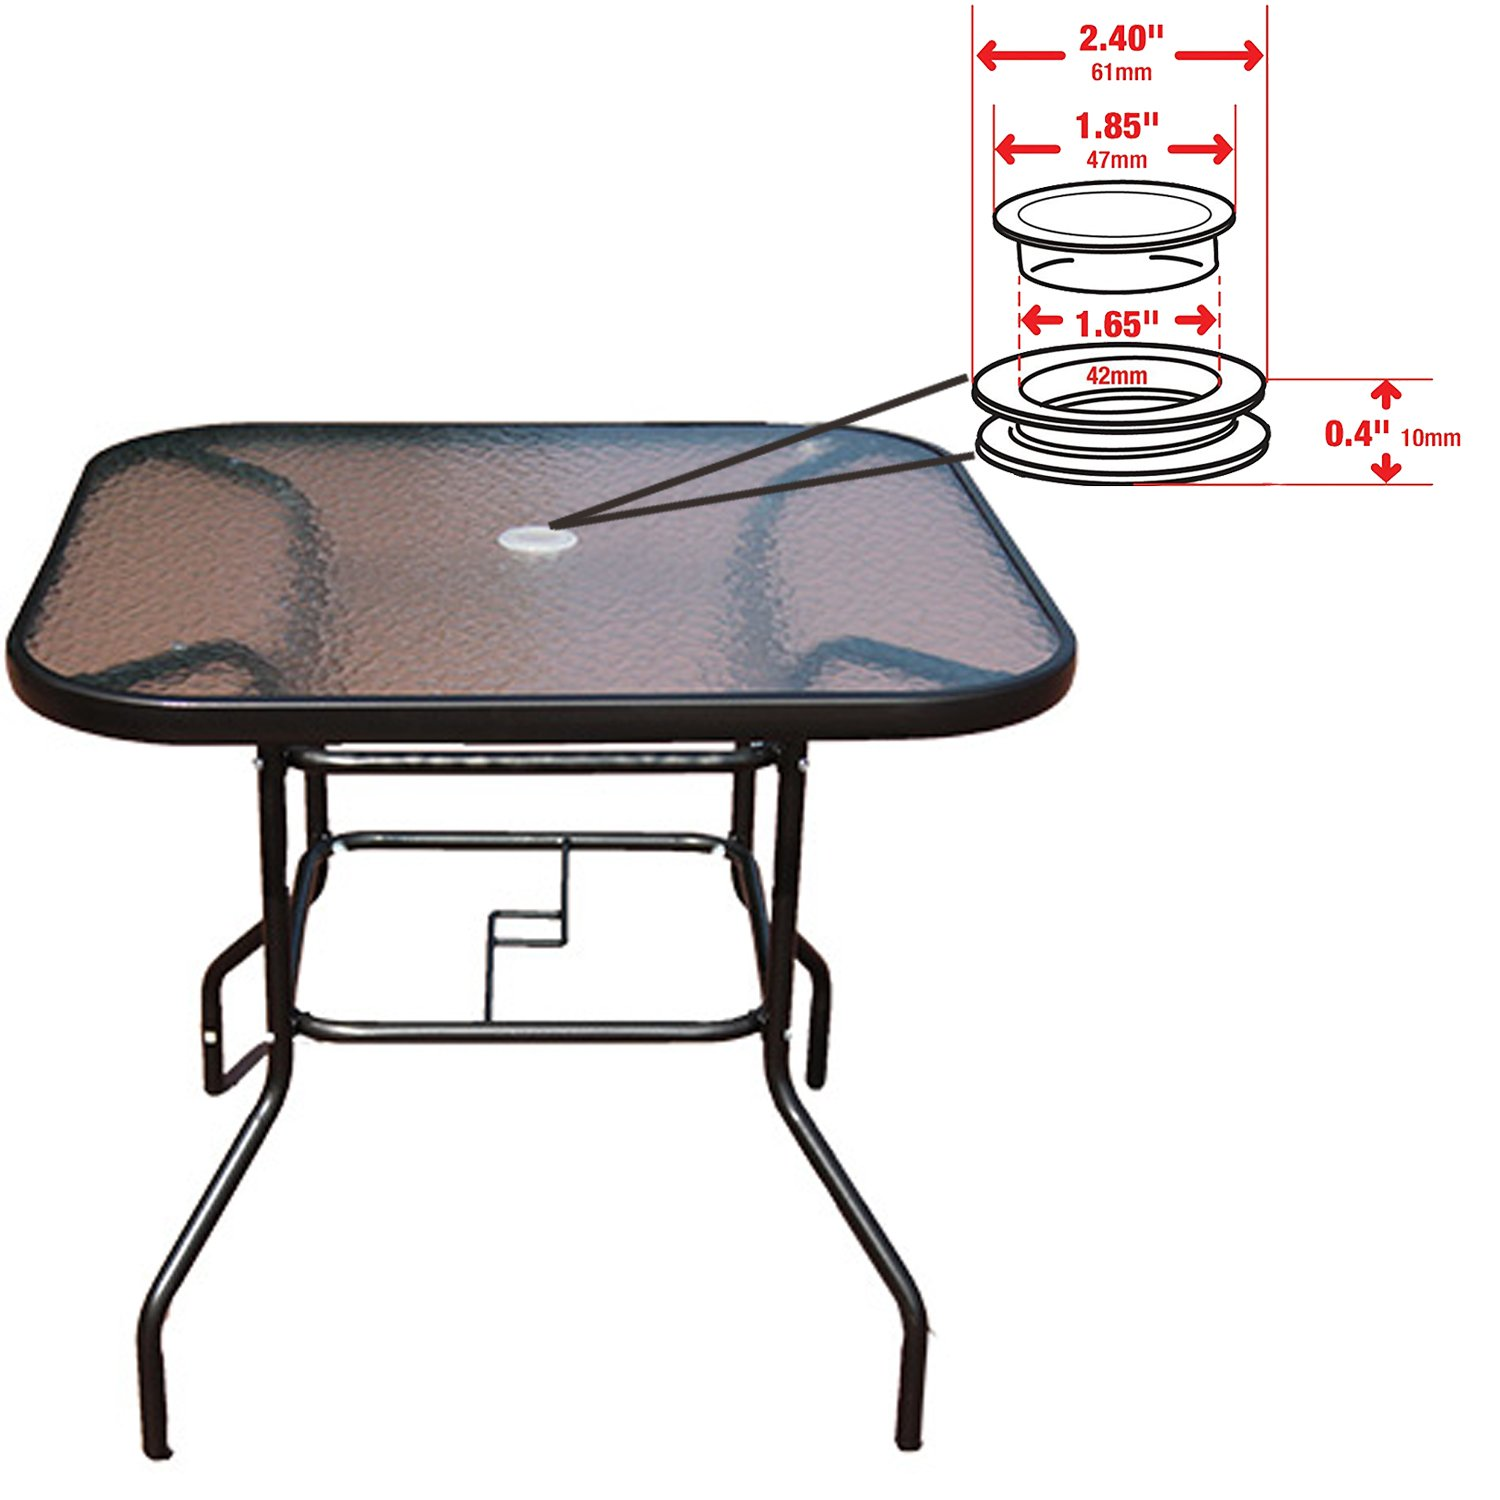 Bettli 1 Count Patio Table Umbrella Hole Ring Plug Cover And Cap For